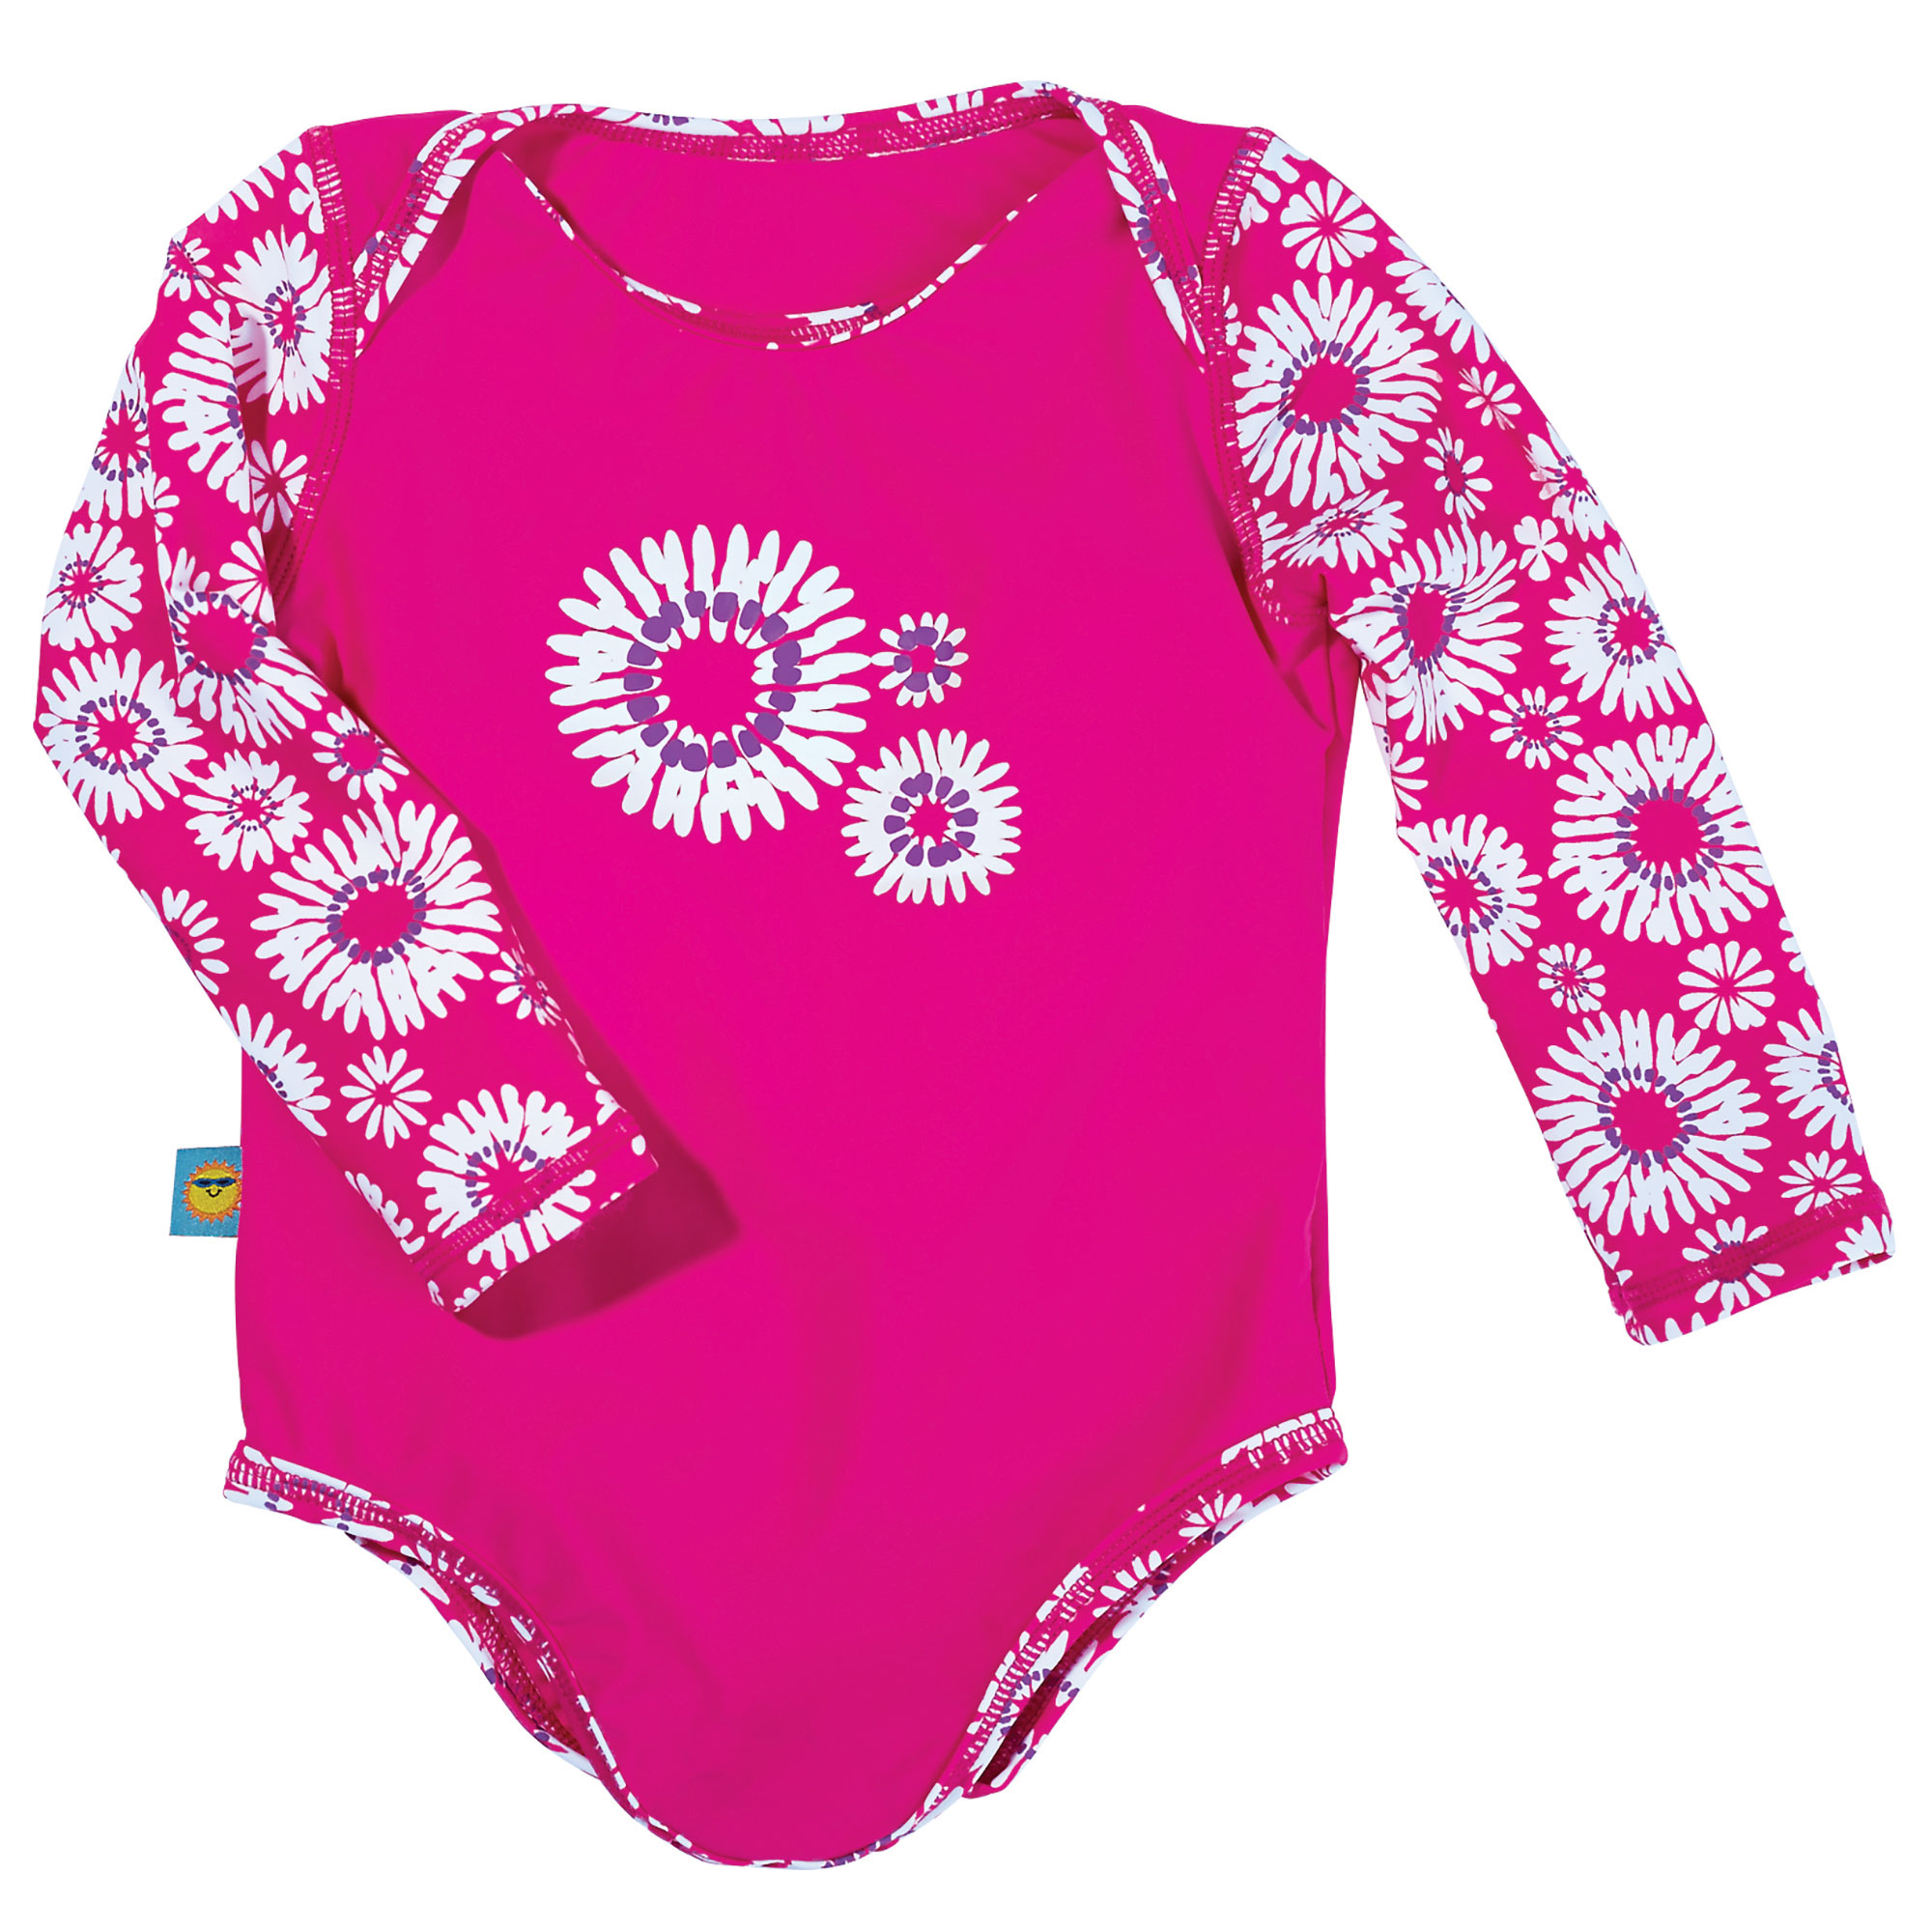 Sun Smarties Baby Girl Swimsuit - Fuchsia Pink Floral Design - UPF 50+ Long Sleeve Sun Protection